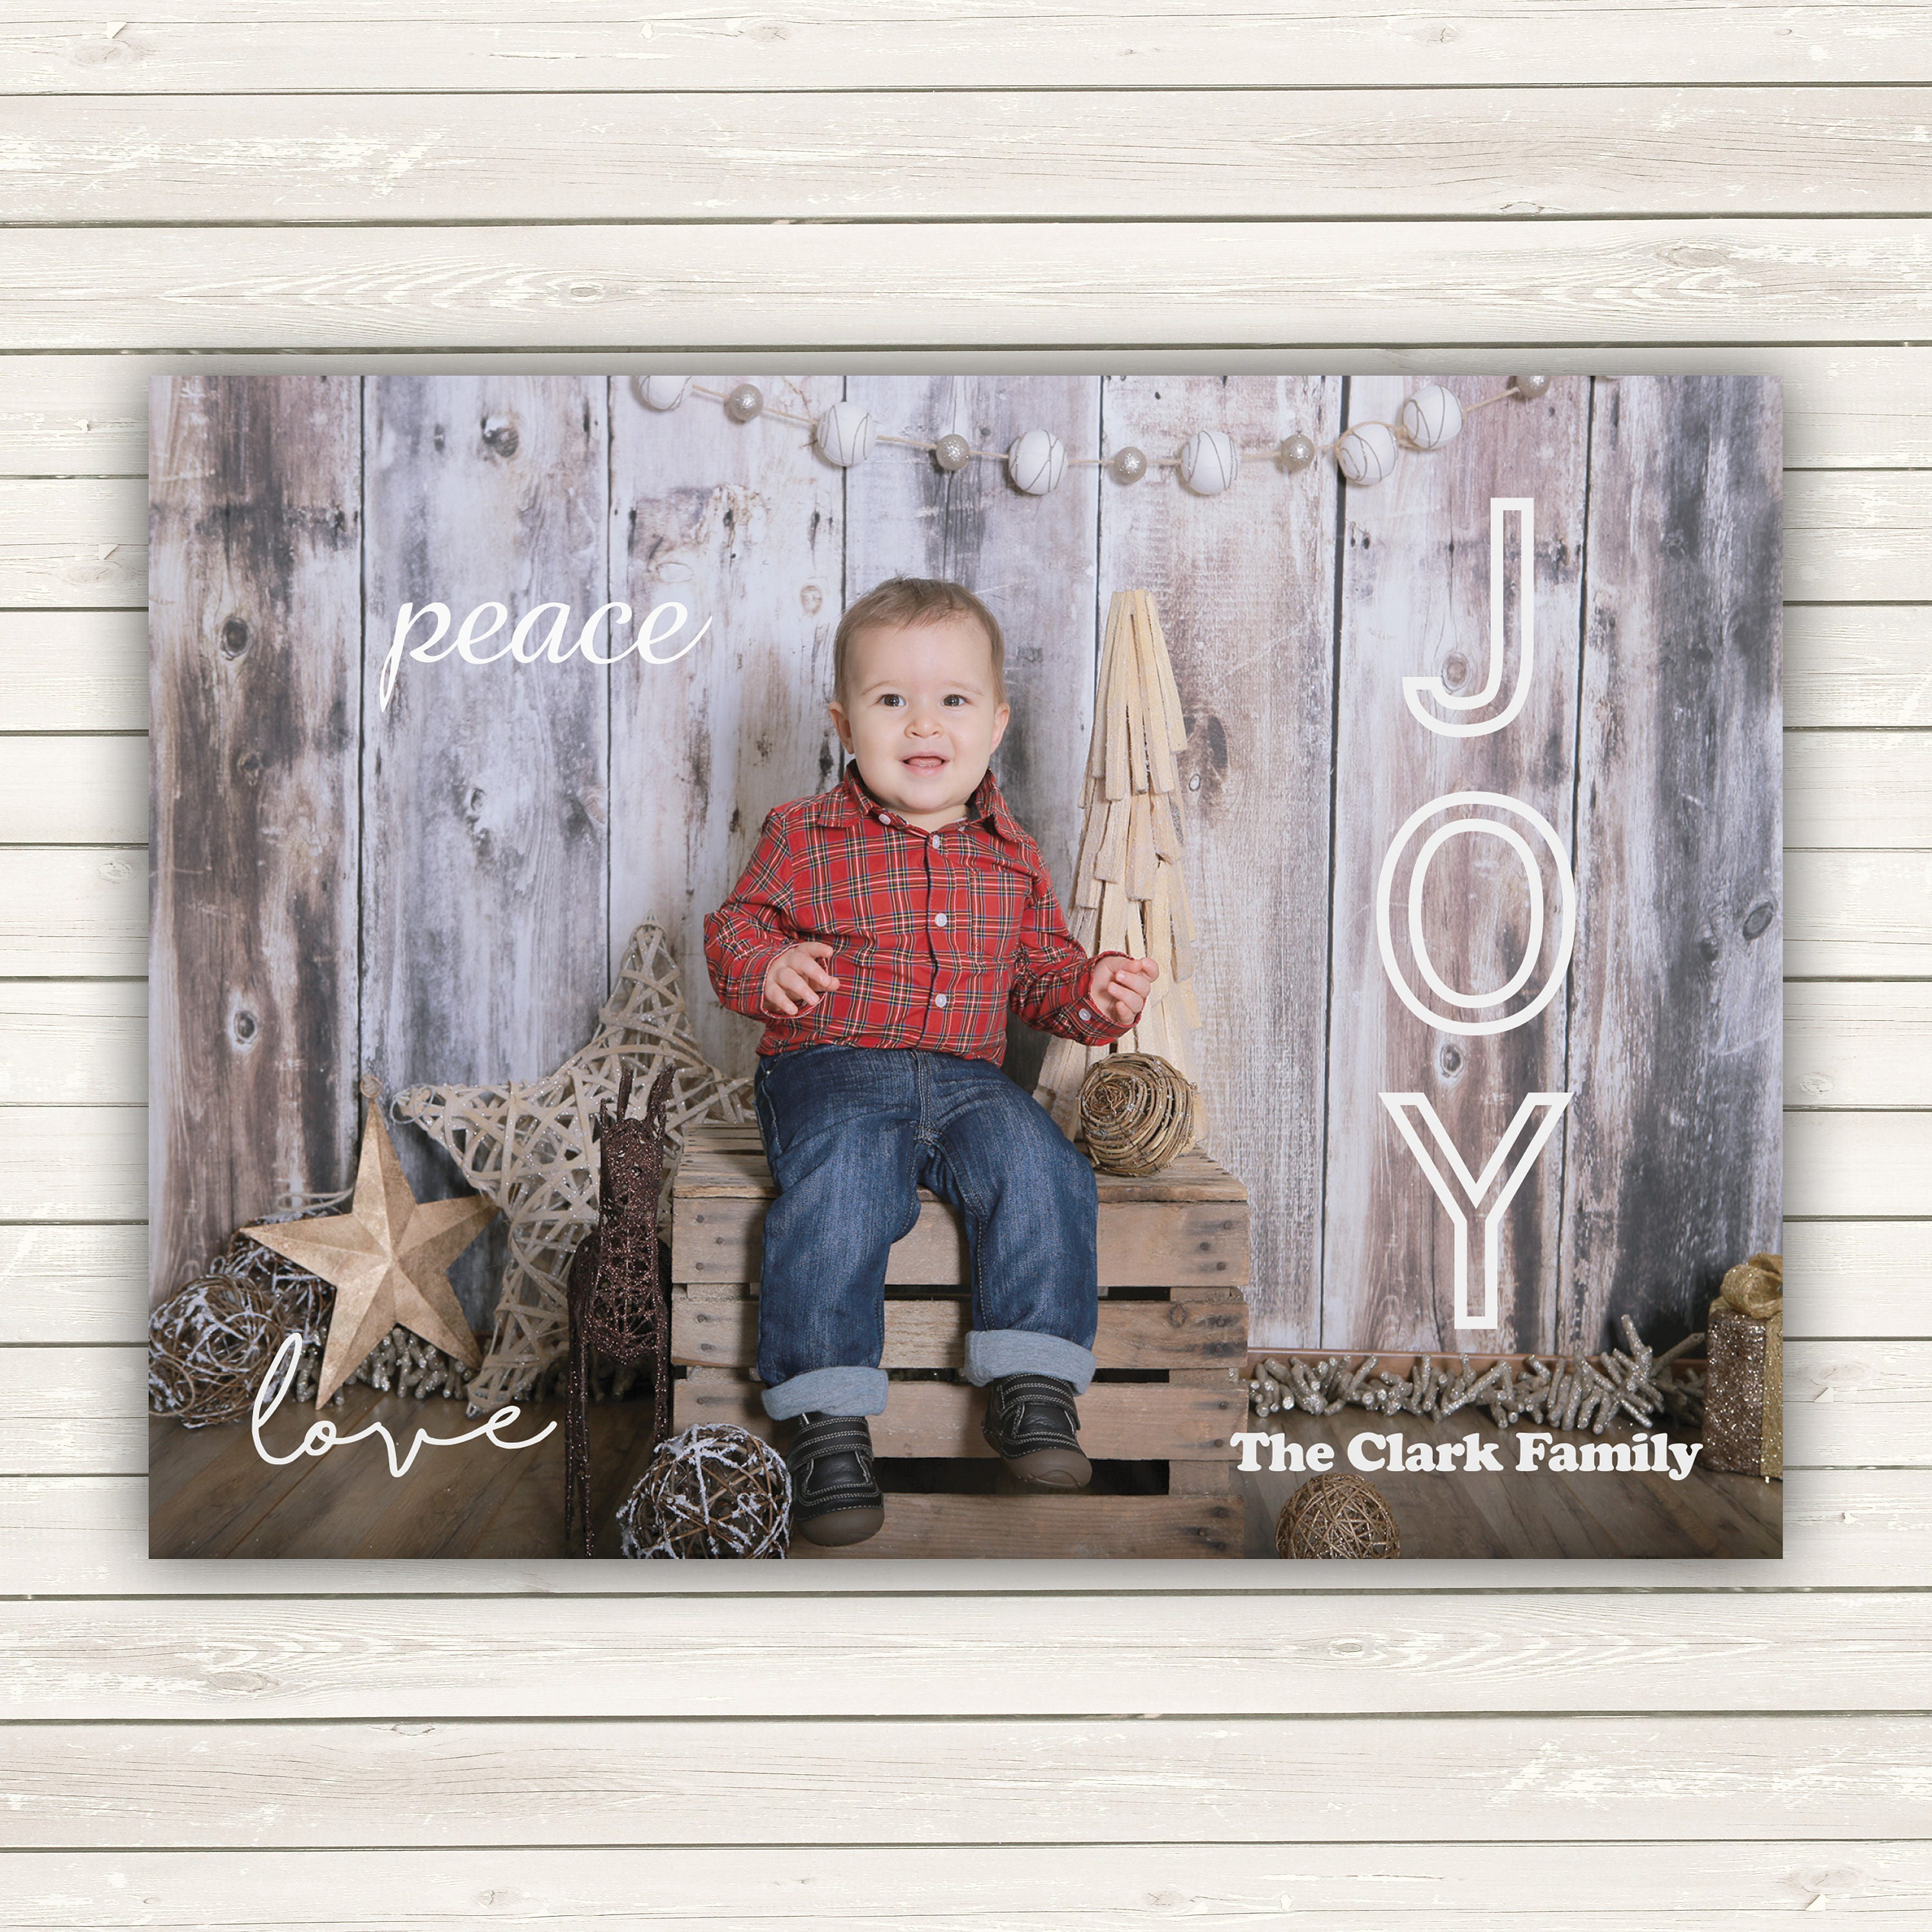 photo christmas cards personalized christmas cards christmas cards flat photo christmas cards baby photo christmas card merry christmas - Photo Personalized Christmas Cards